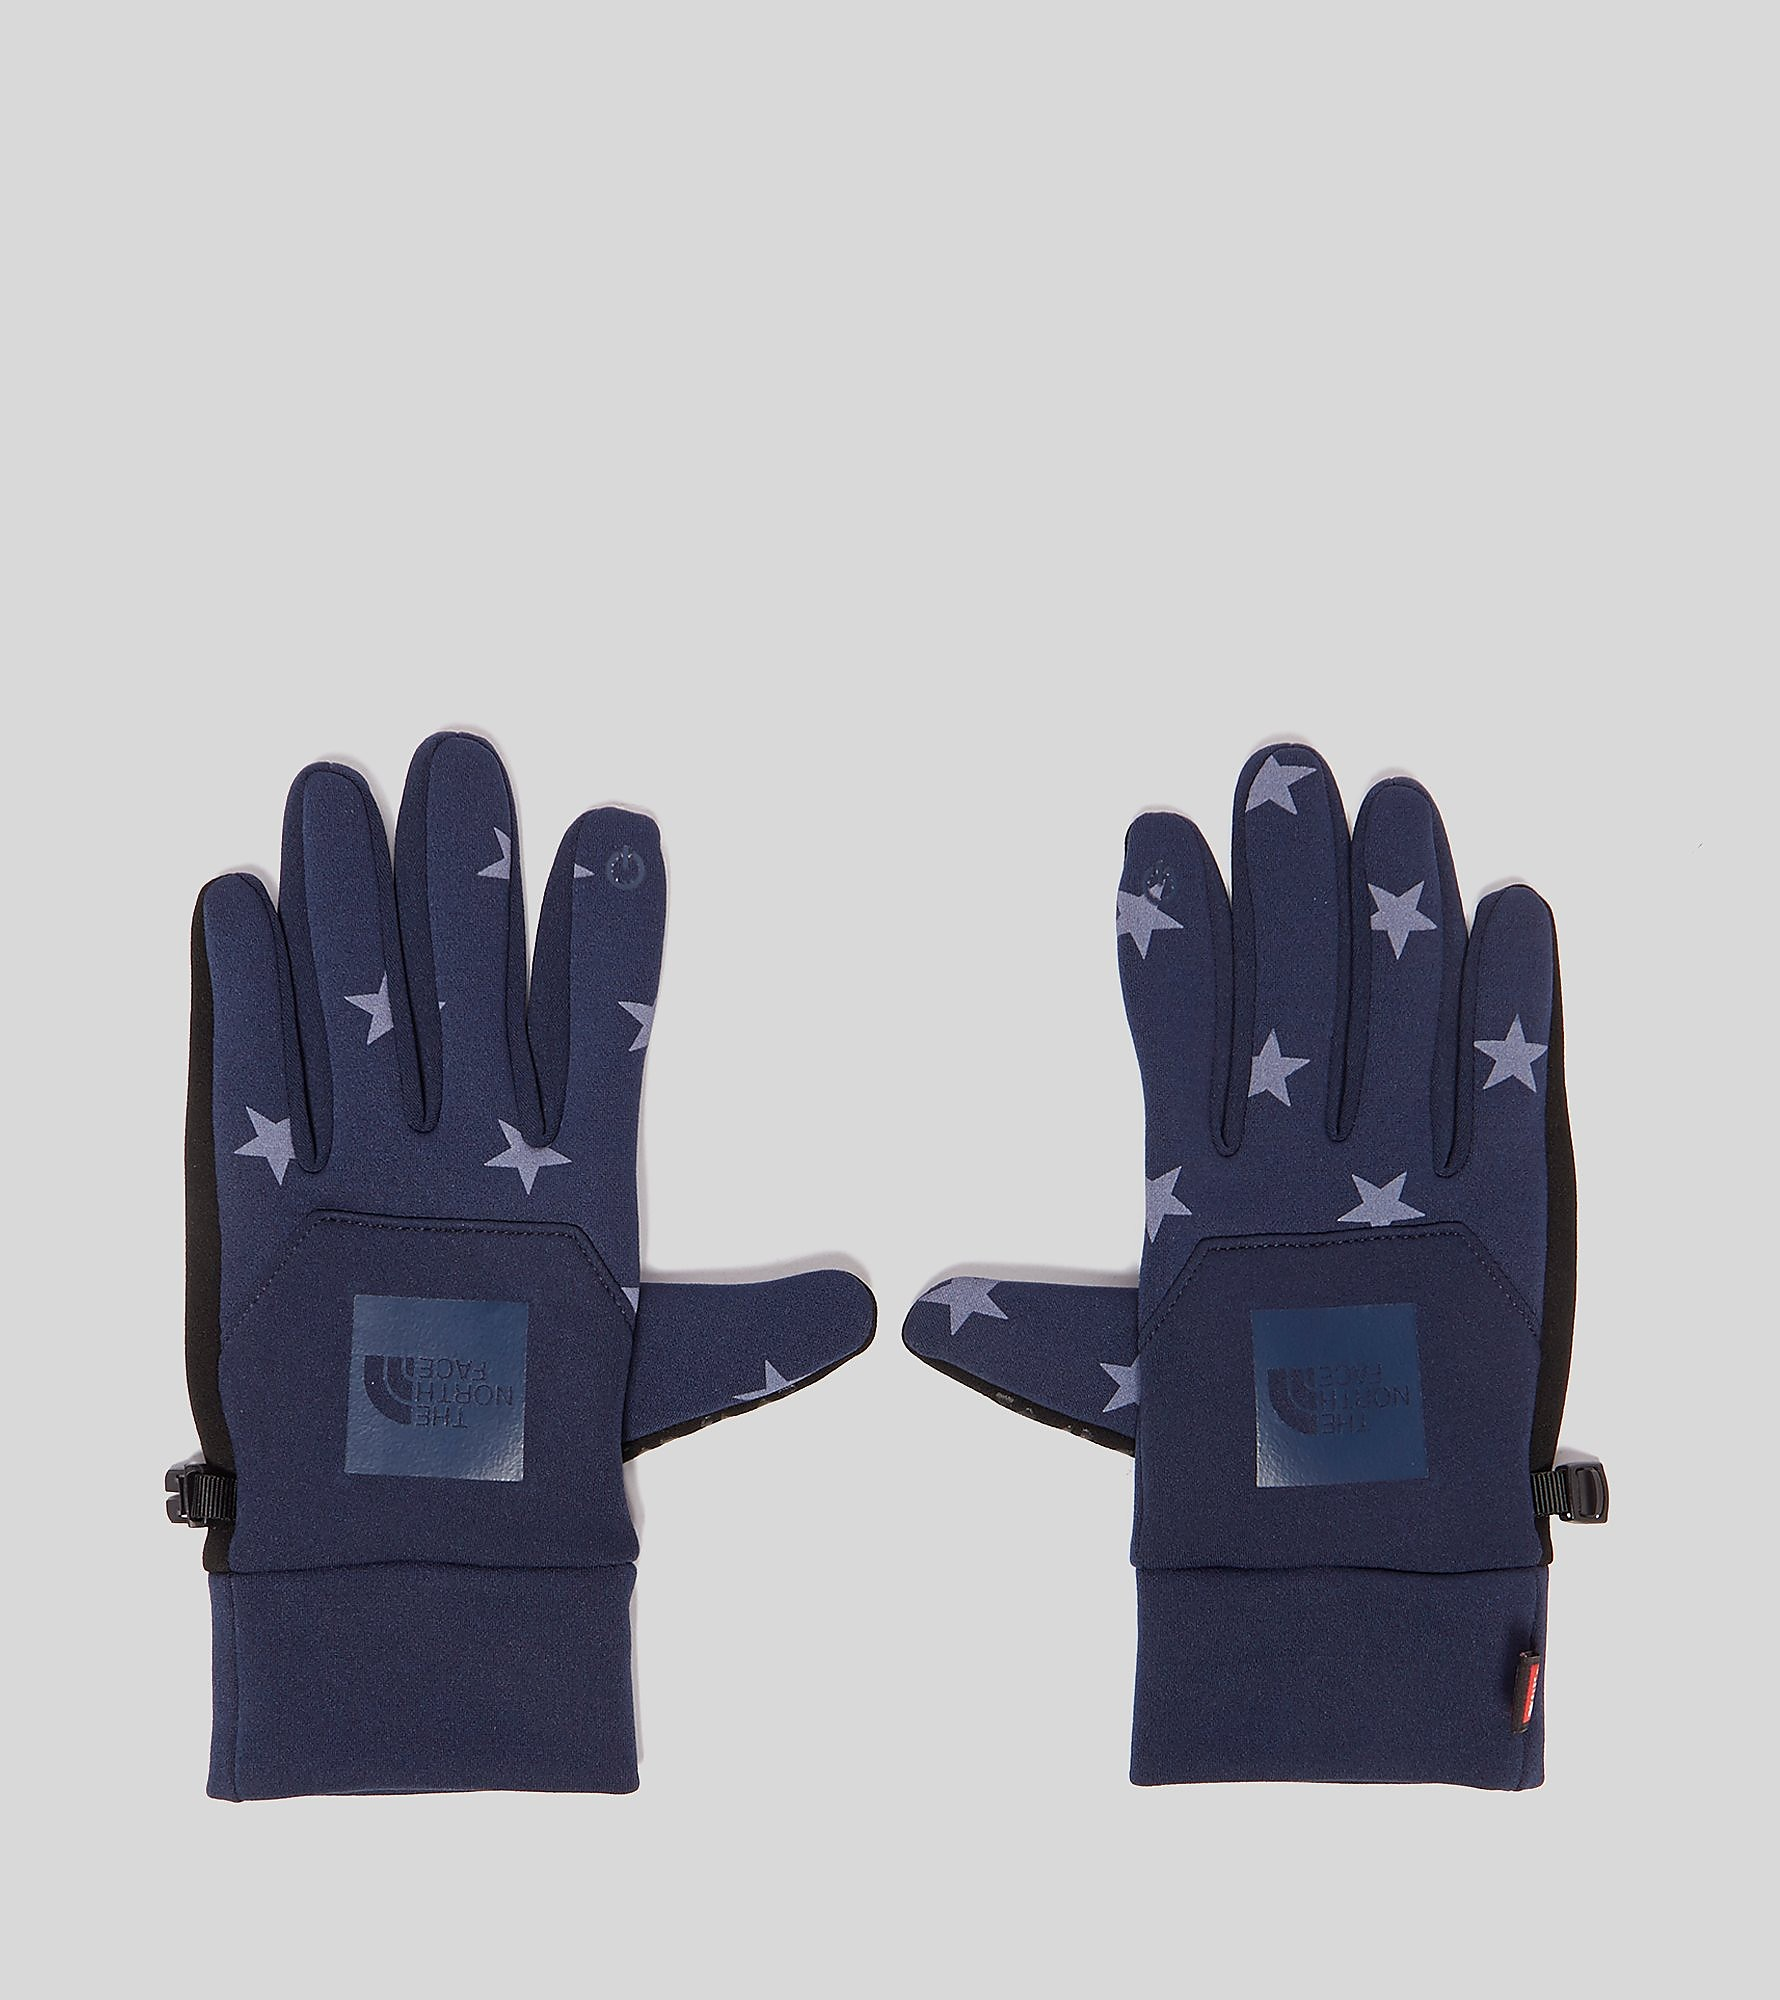 The North Face International E-Tip Gloves